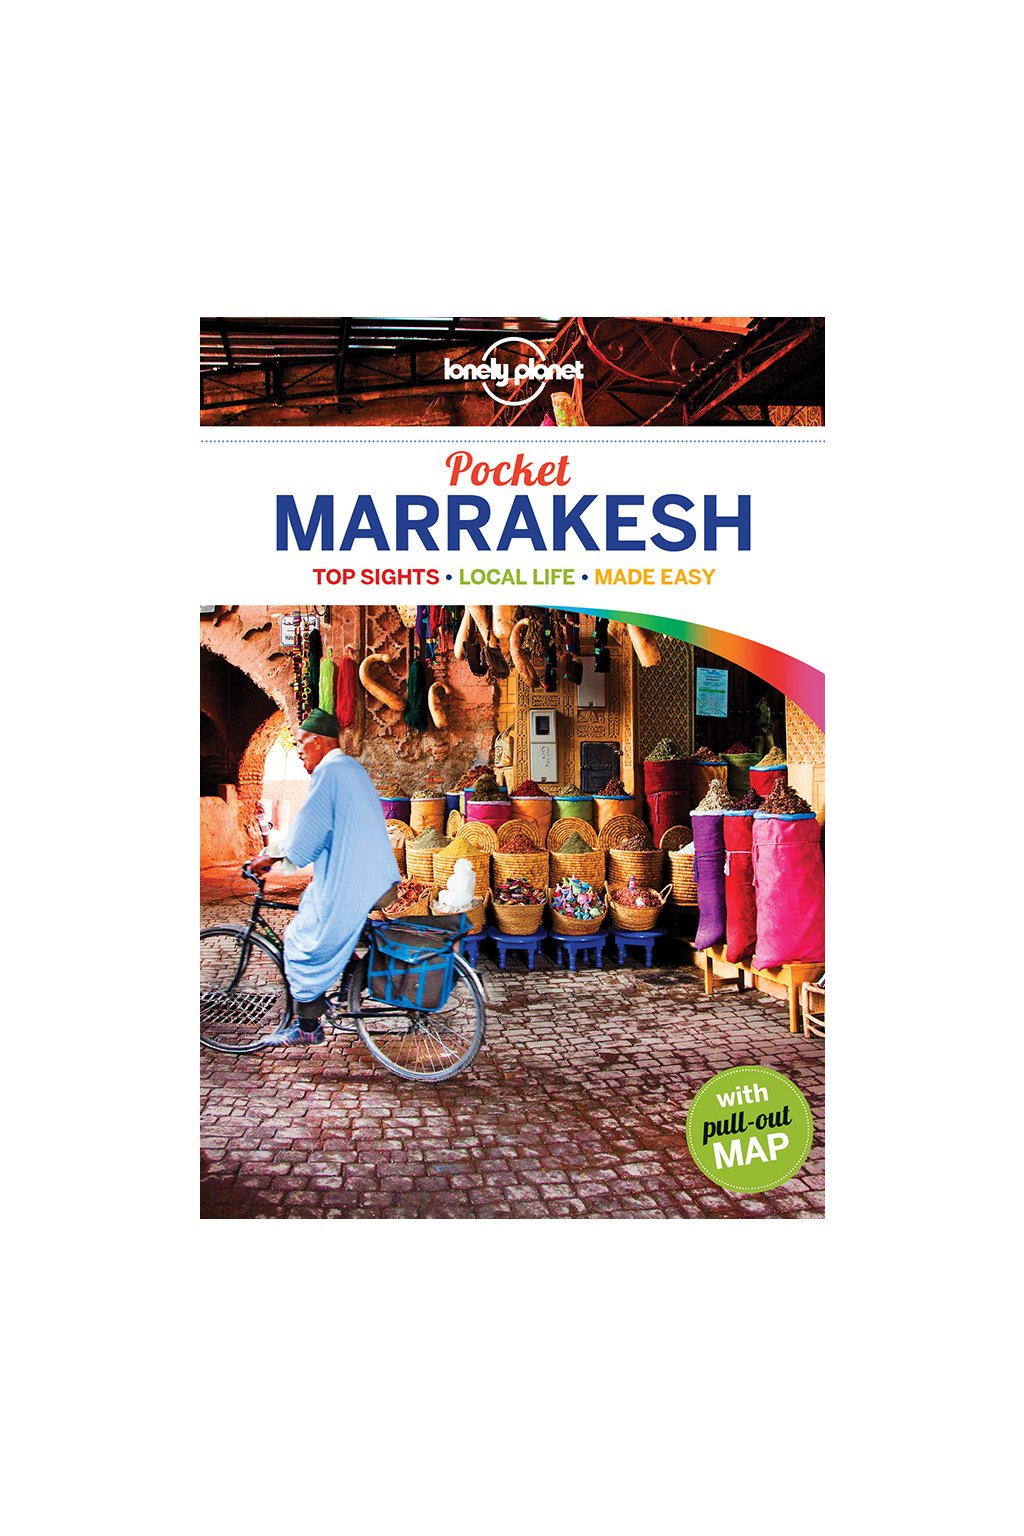 55334 Pocket Marrakesh 4 pk 9781786570369